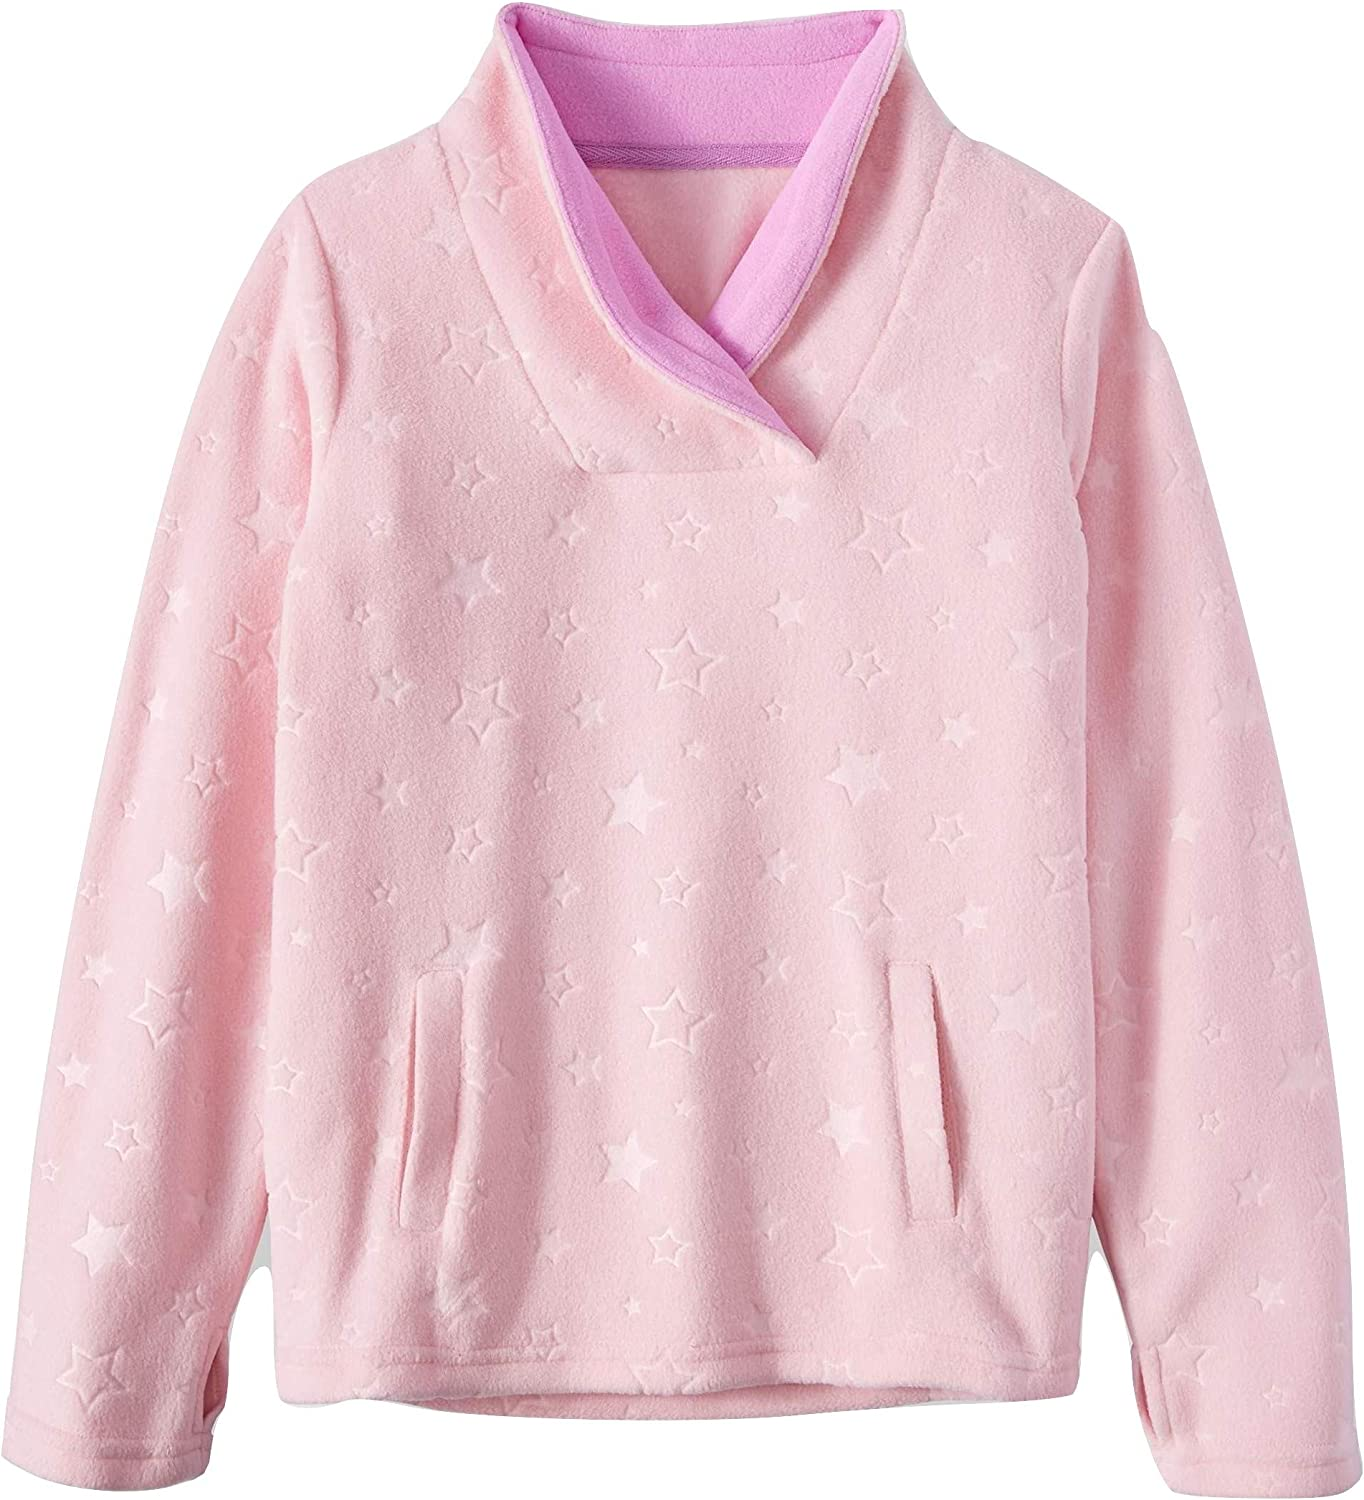 Athletic Works top Girls Size L 10-12 Microfleece Pullover Long Sleeves Pink